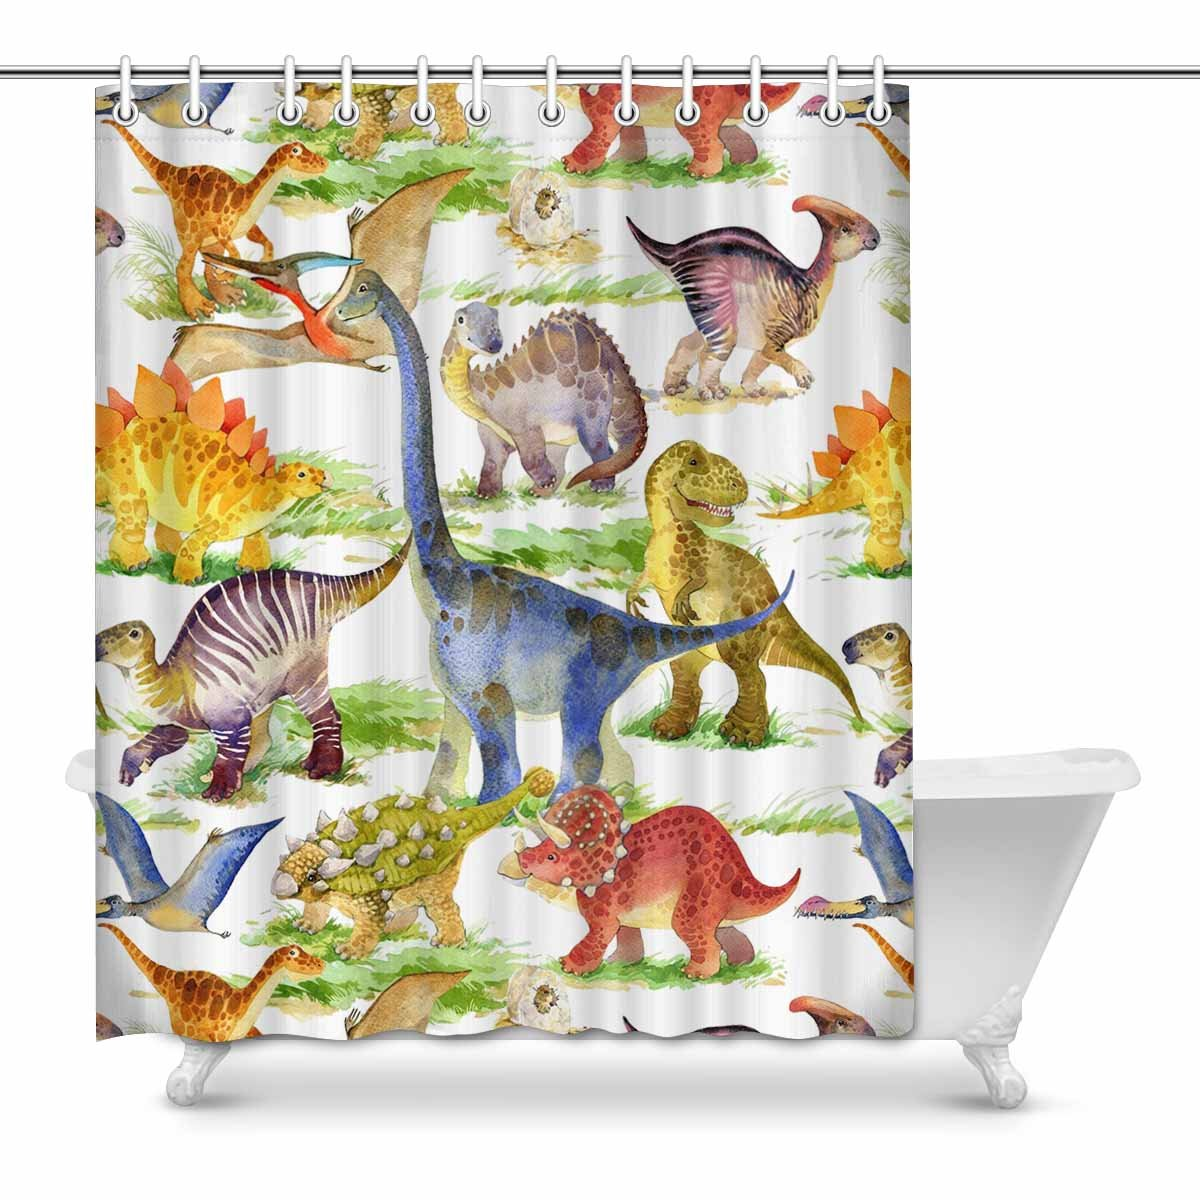 Mkhert Cute Dinosaurs Watercolor Animal Waterproof Shower Curtain Decor Fabric Bathroom Set 60x72 Inch Walmart Com